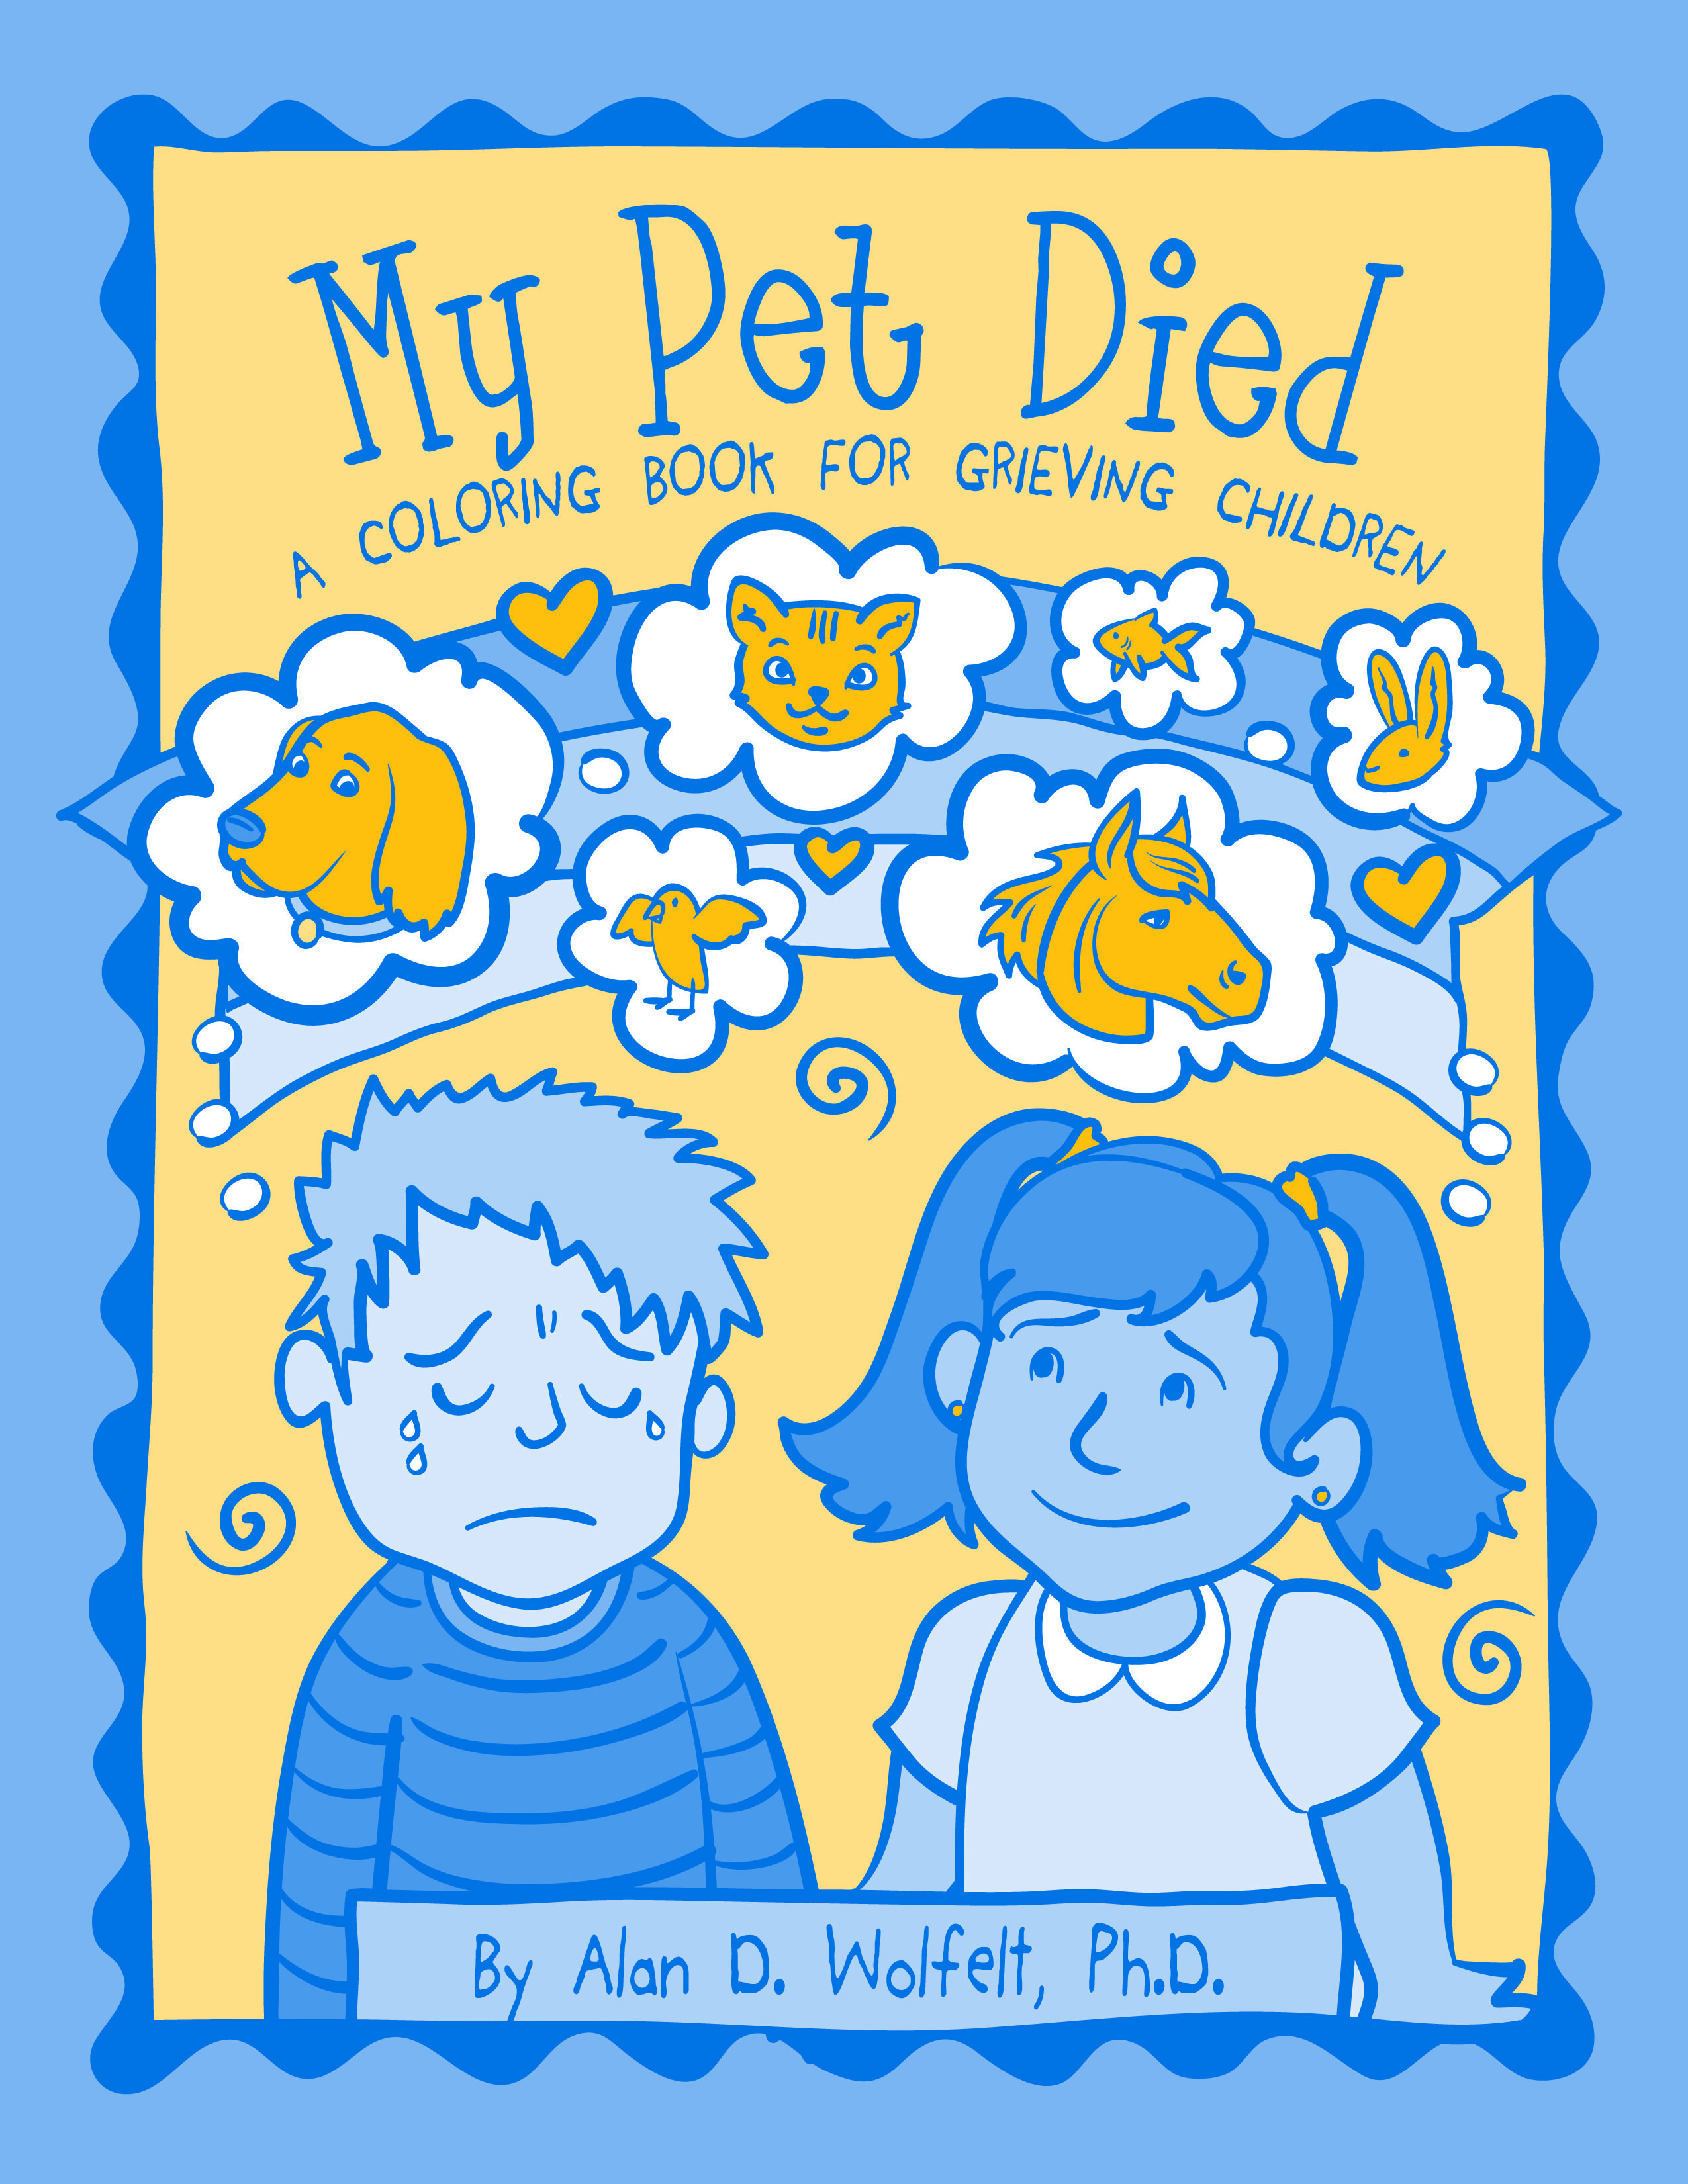 My Petd A Coloring Book For Grieving Children